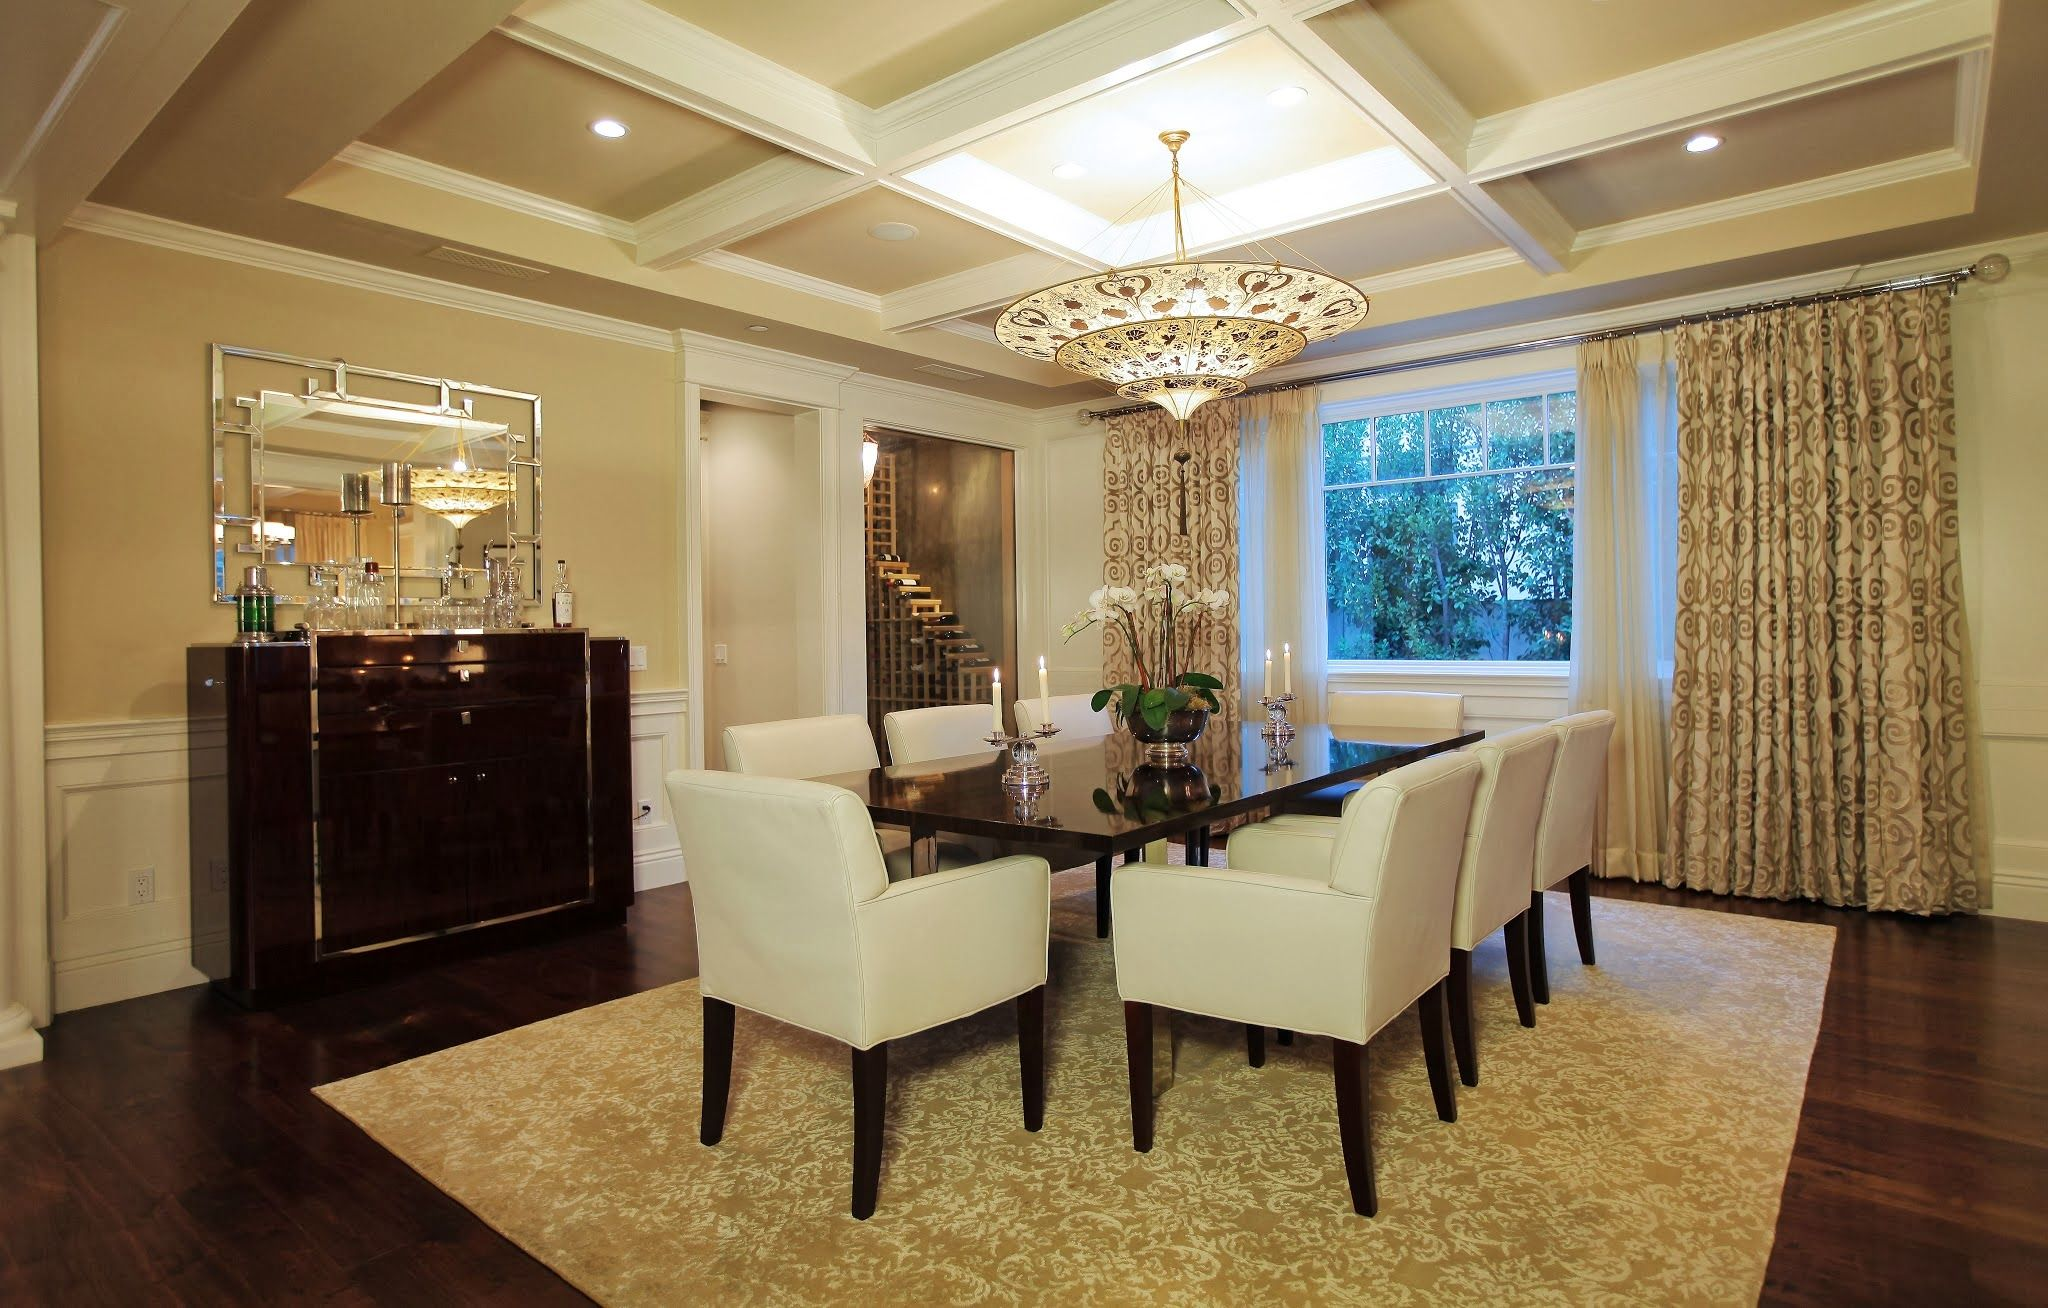 Top Ceiling Designs For Dining Room With Ideas Gorgeous Beautiful Design